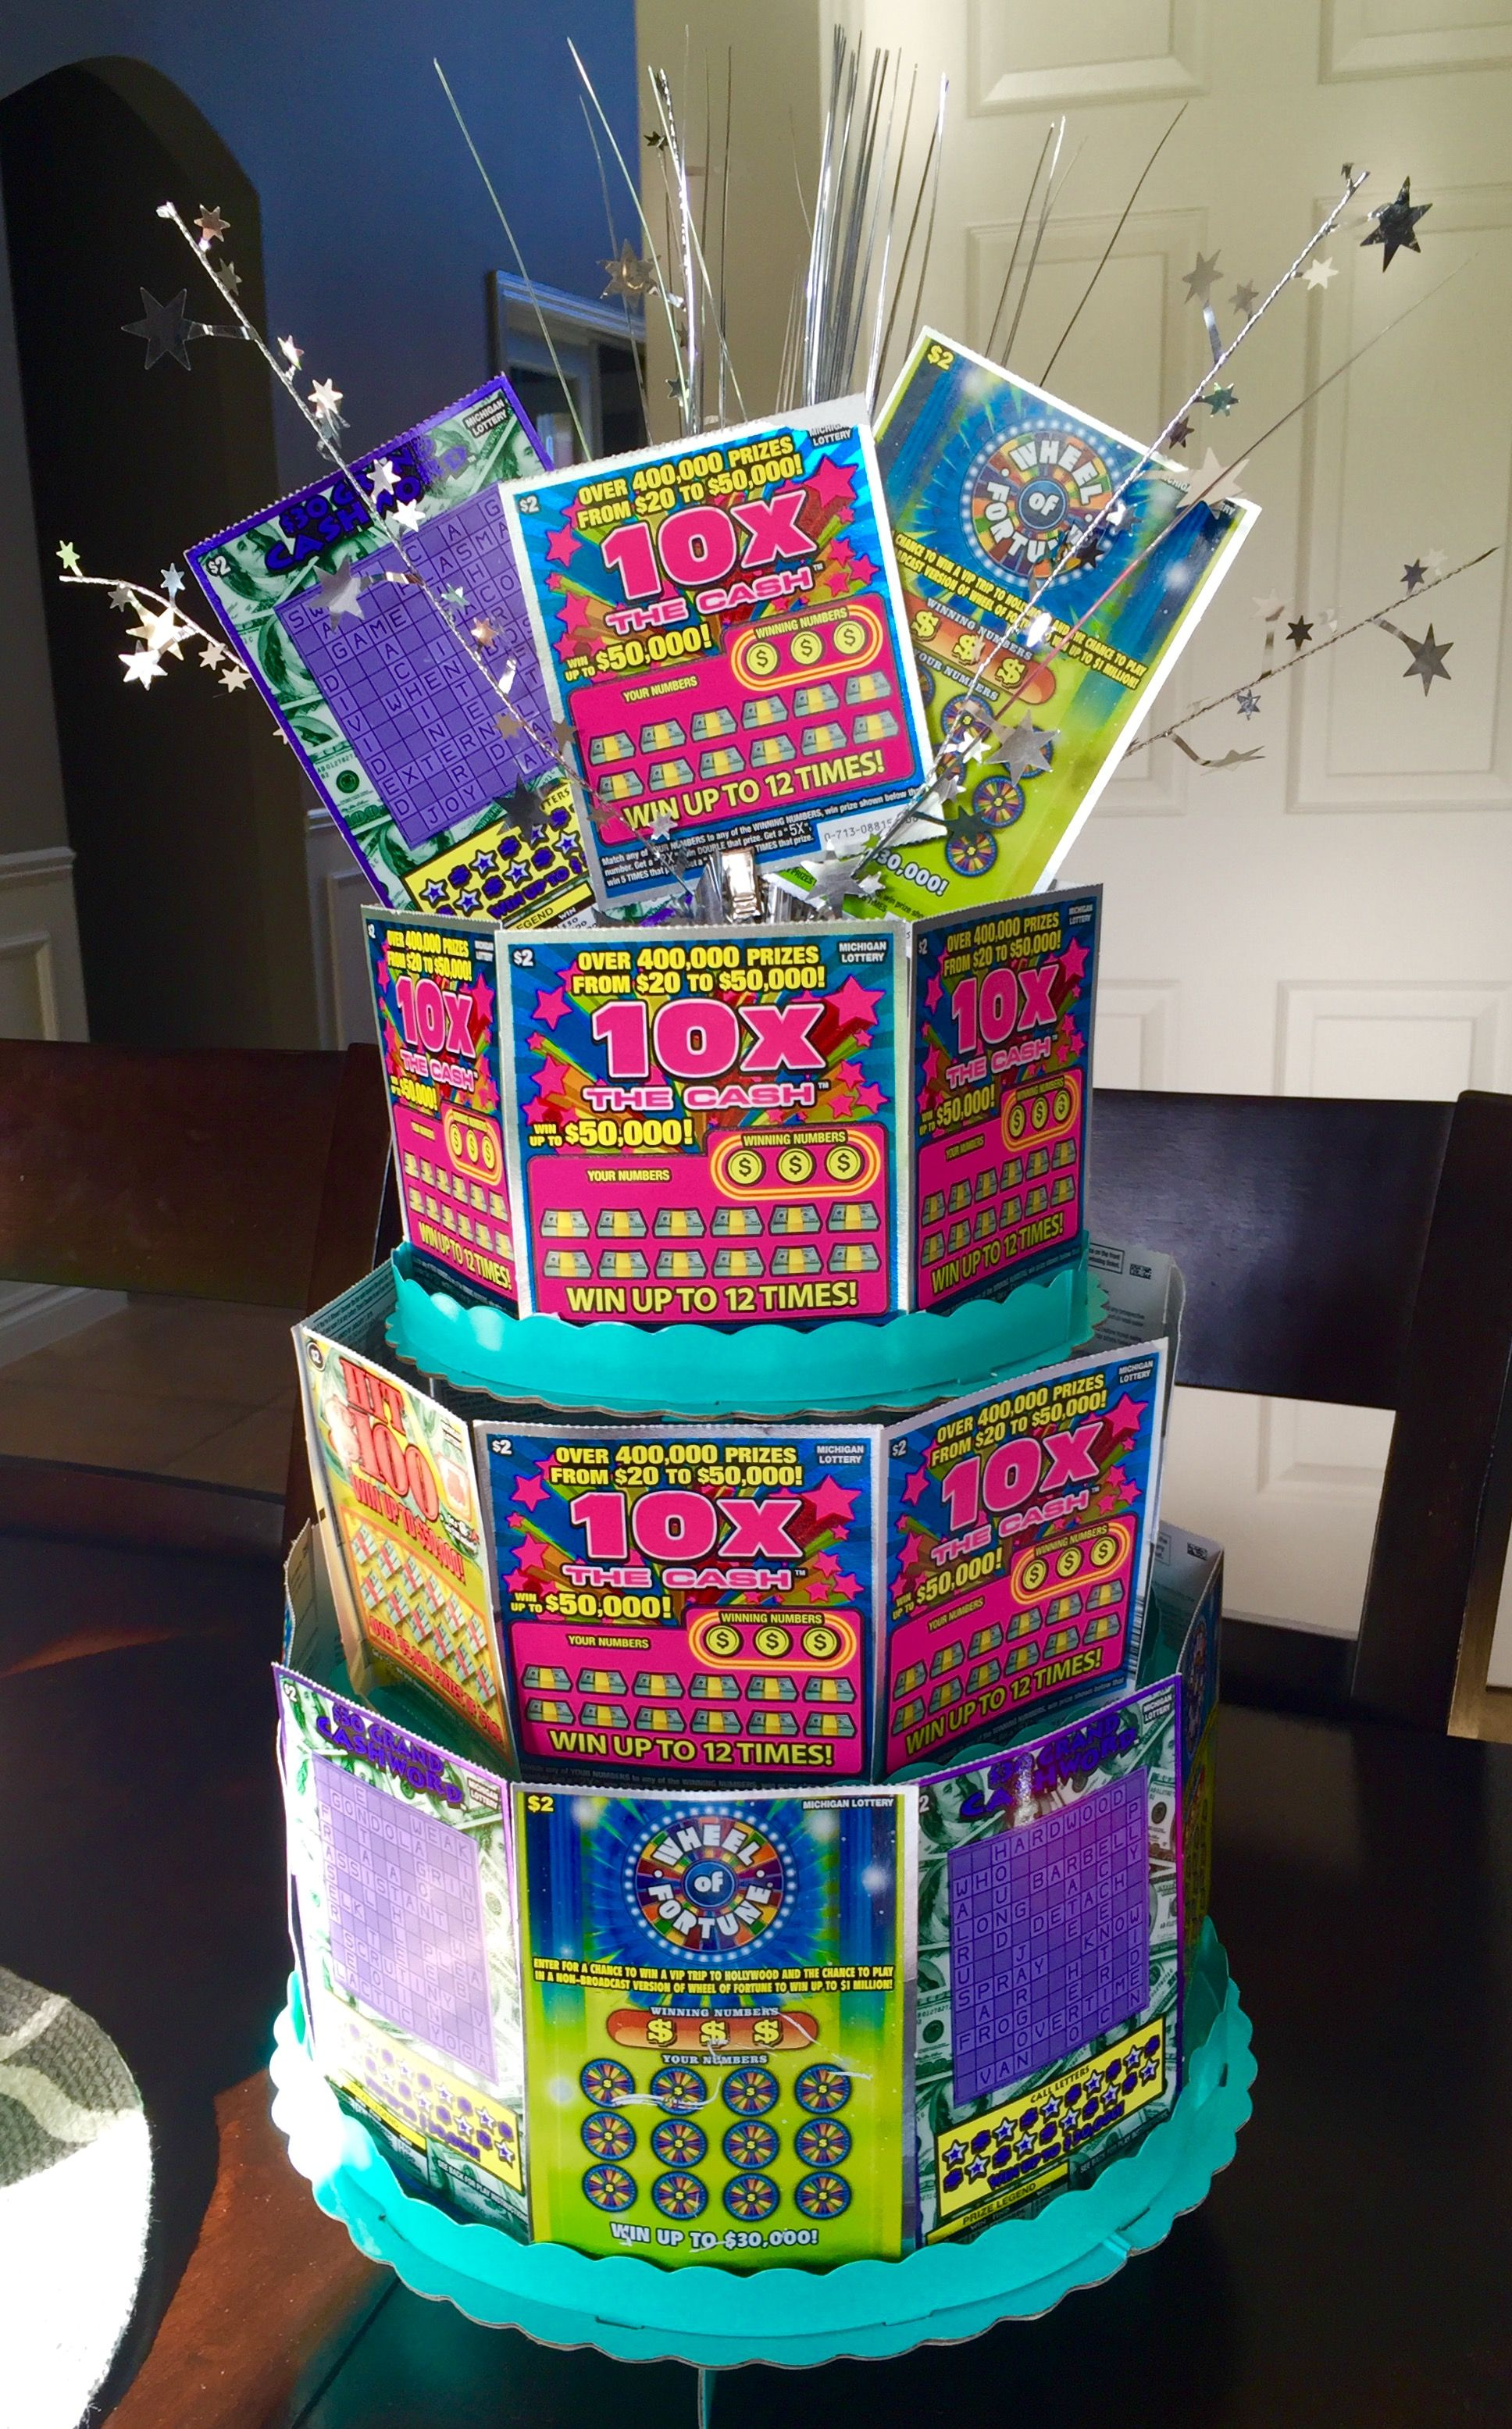 Lottery cake birthday giftraffle ideas made from scratch off lottery cake birthday giftraffle ideas made from scratch off lottery tickets and cardboard negle Choice Image